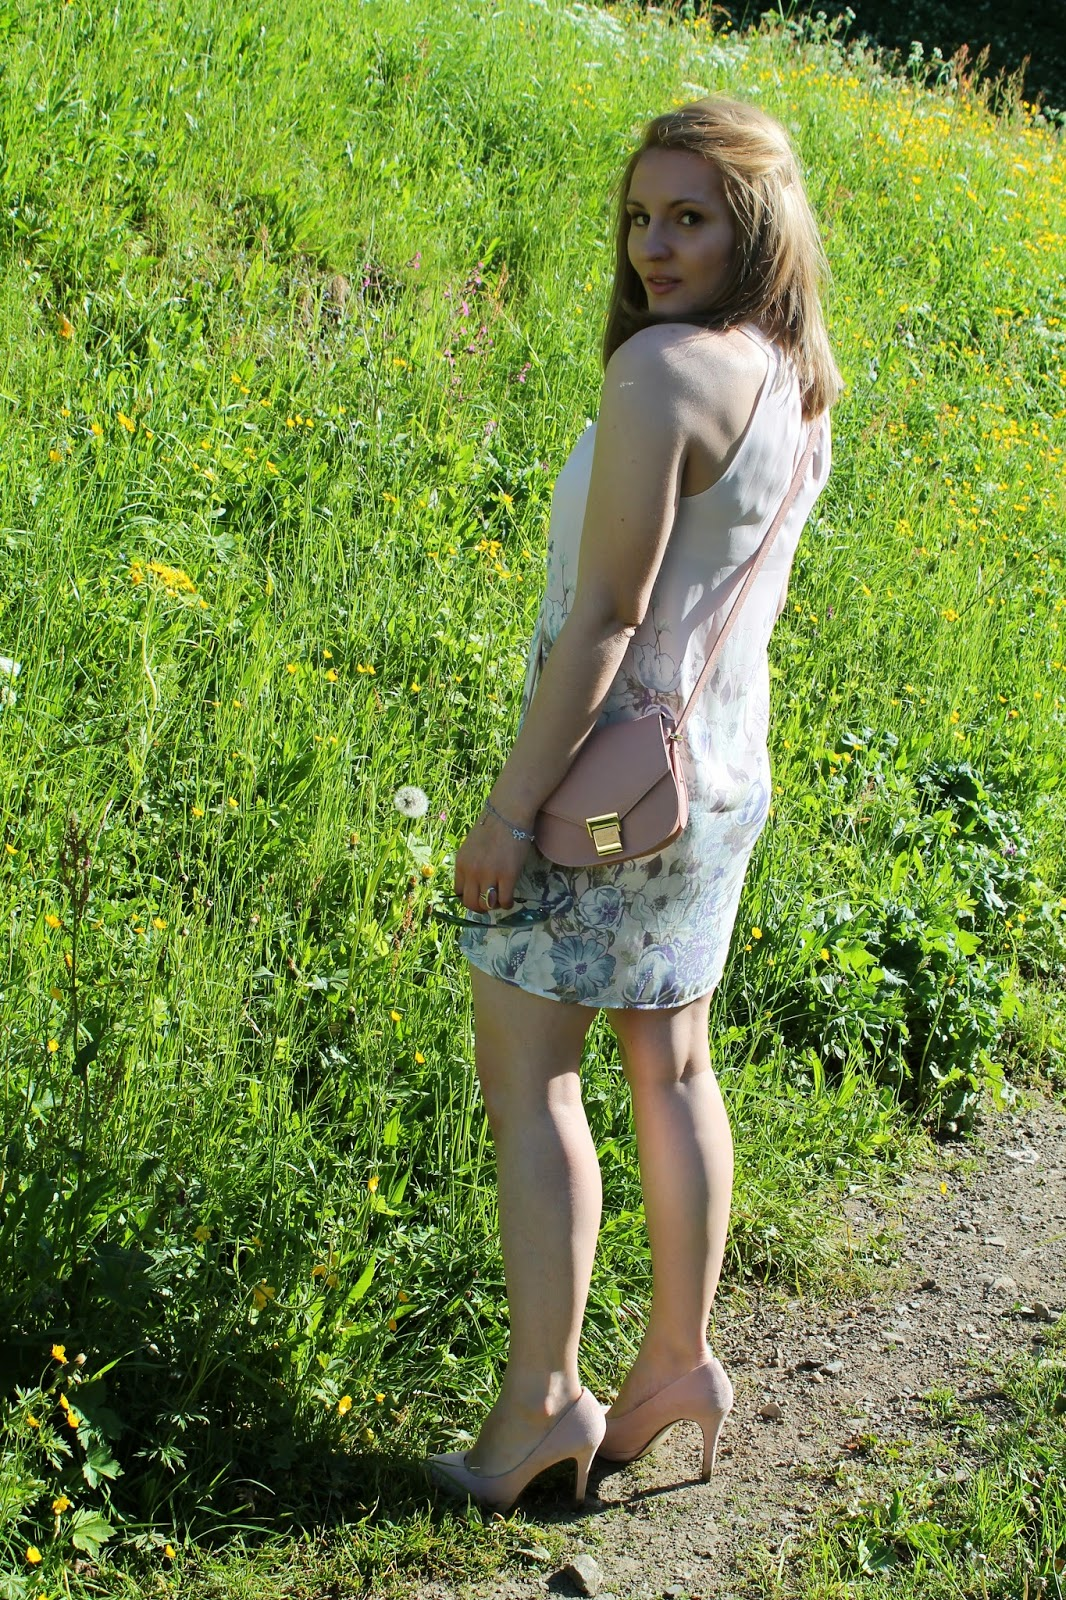 Fashionblogger Austria / Österreich / Deutsch / German / Kärnten / Carinthia / Klagenfurt / Köttmannsdorf / Spring Look / Classy / Edgy / Summer / Summer Style 2014 / Summer Look / Fashionista Look /  Forever 21 / Persunmall / H&M / Spring/ Flower Dress / Nude Heels / Statement Necklace